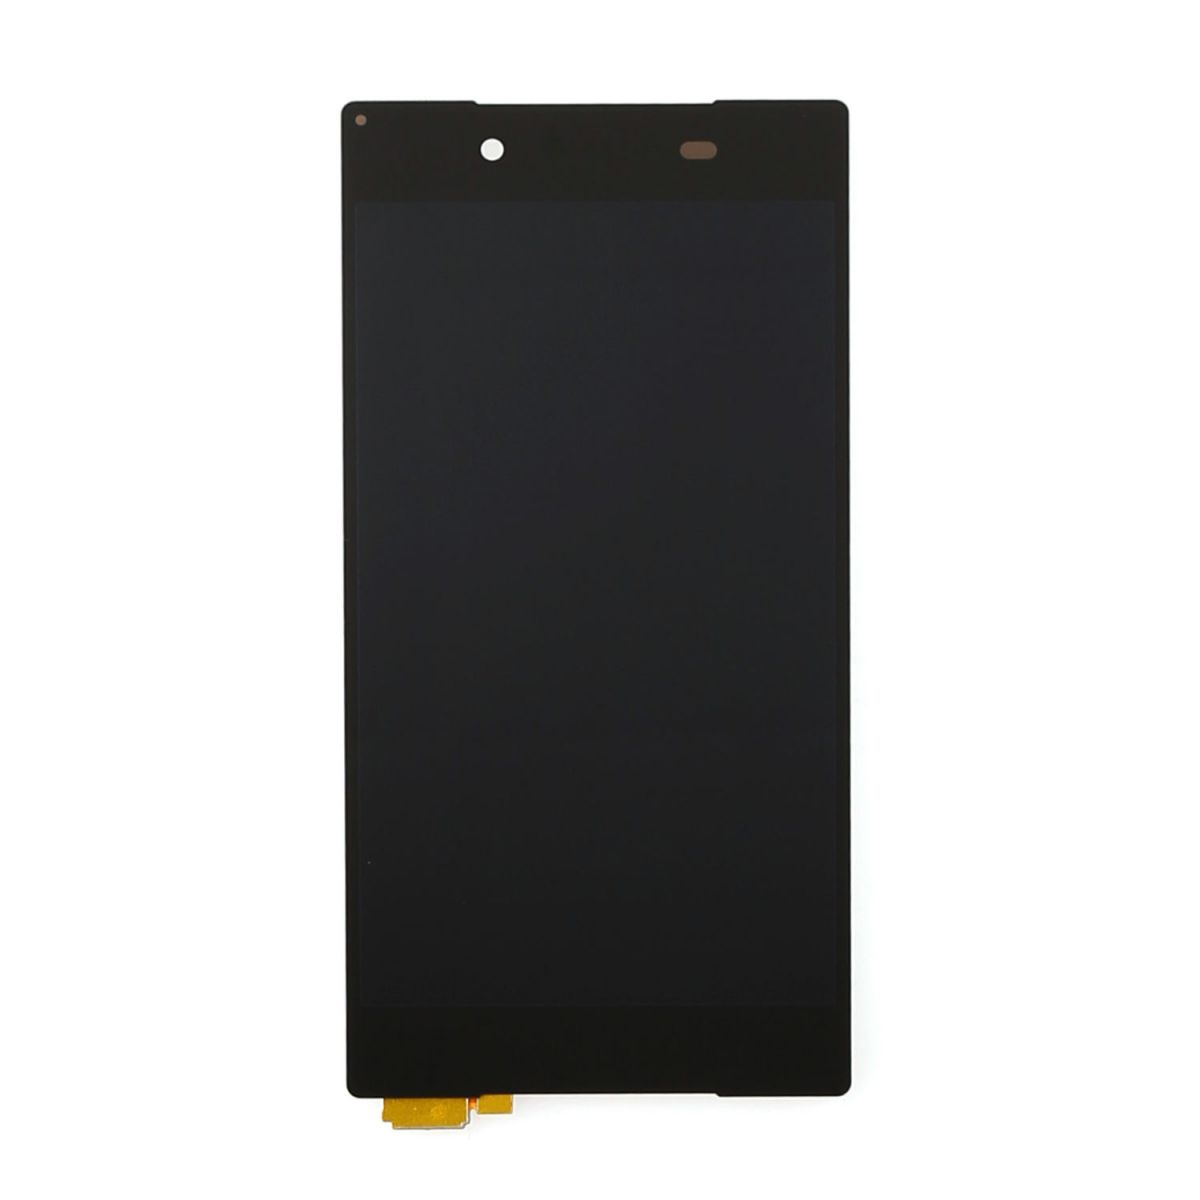 "Tela Touch Lcd Display Sony Xperia Z5 5.2""  S/ Aro Original"